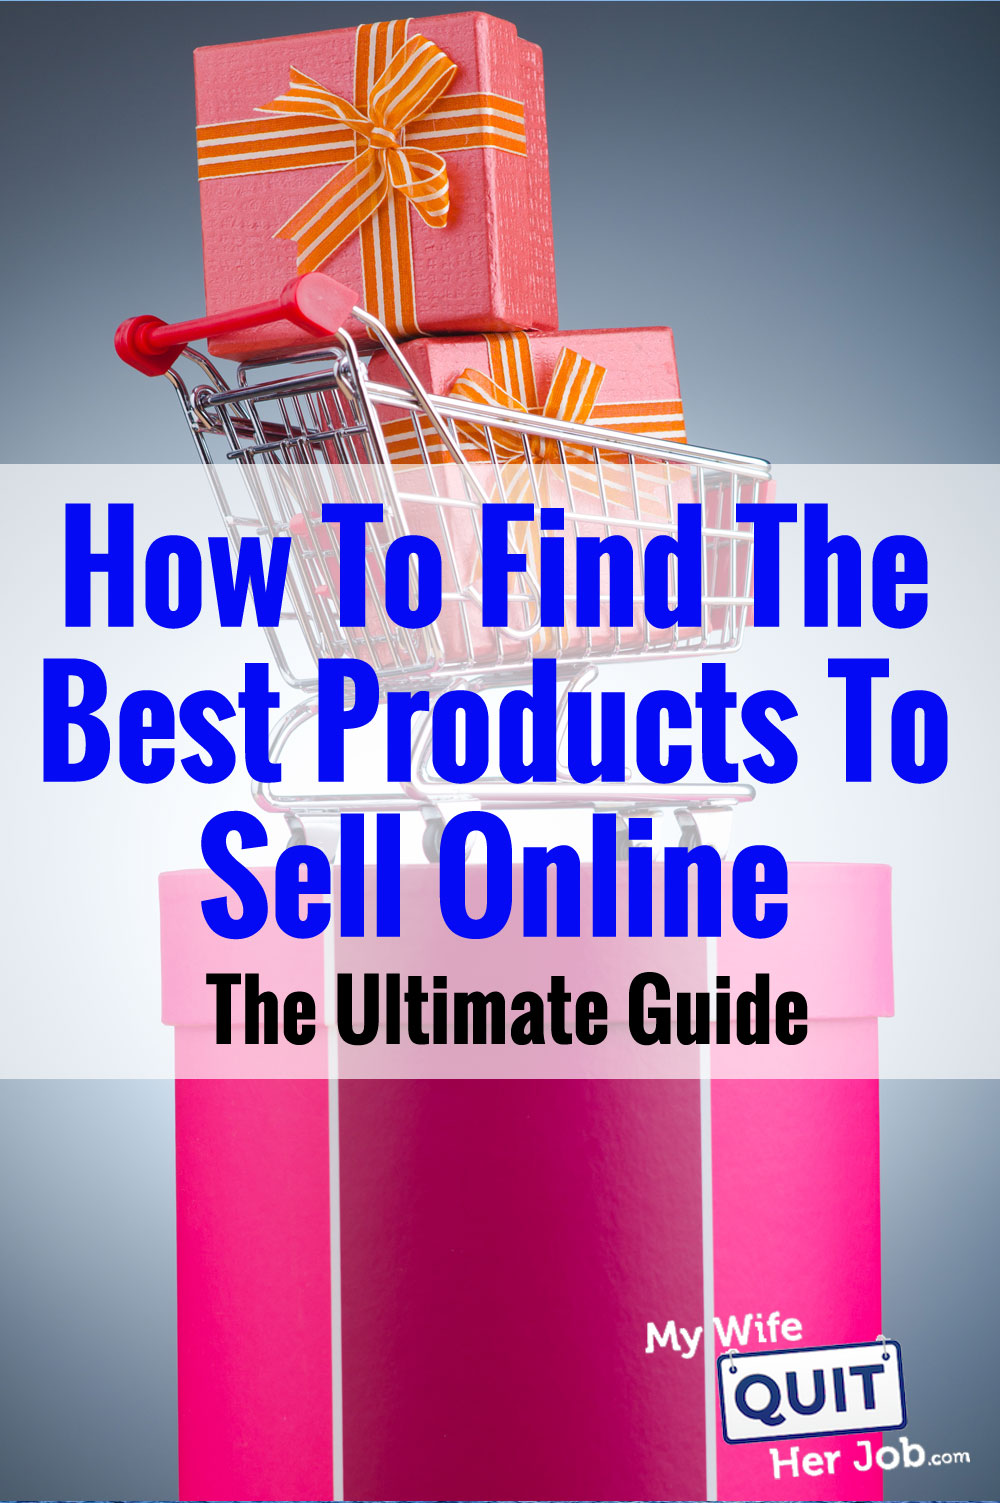 how to find the best products to sell online - the ultimate step by